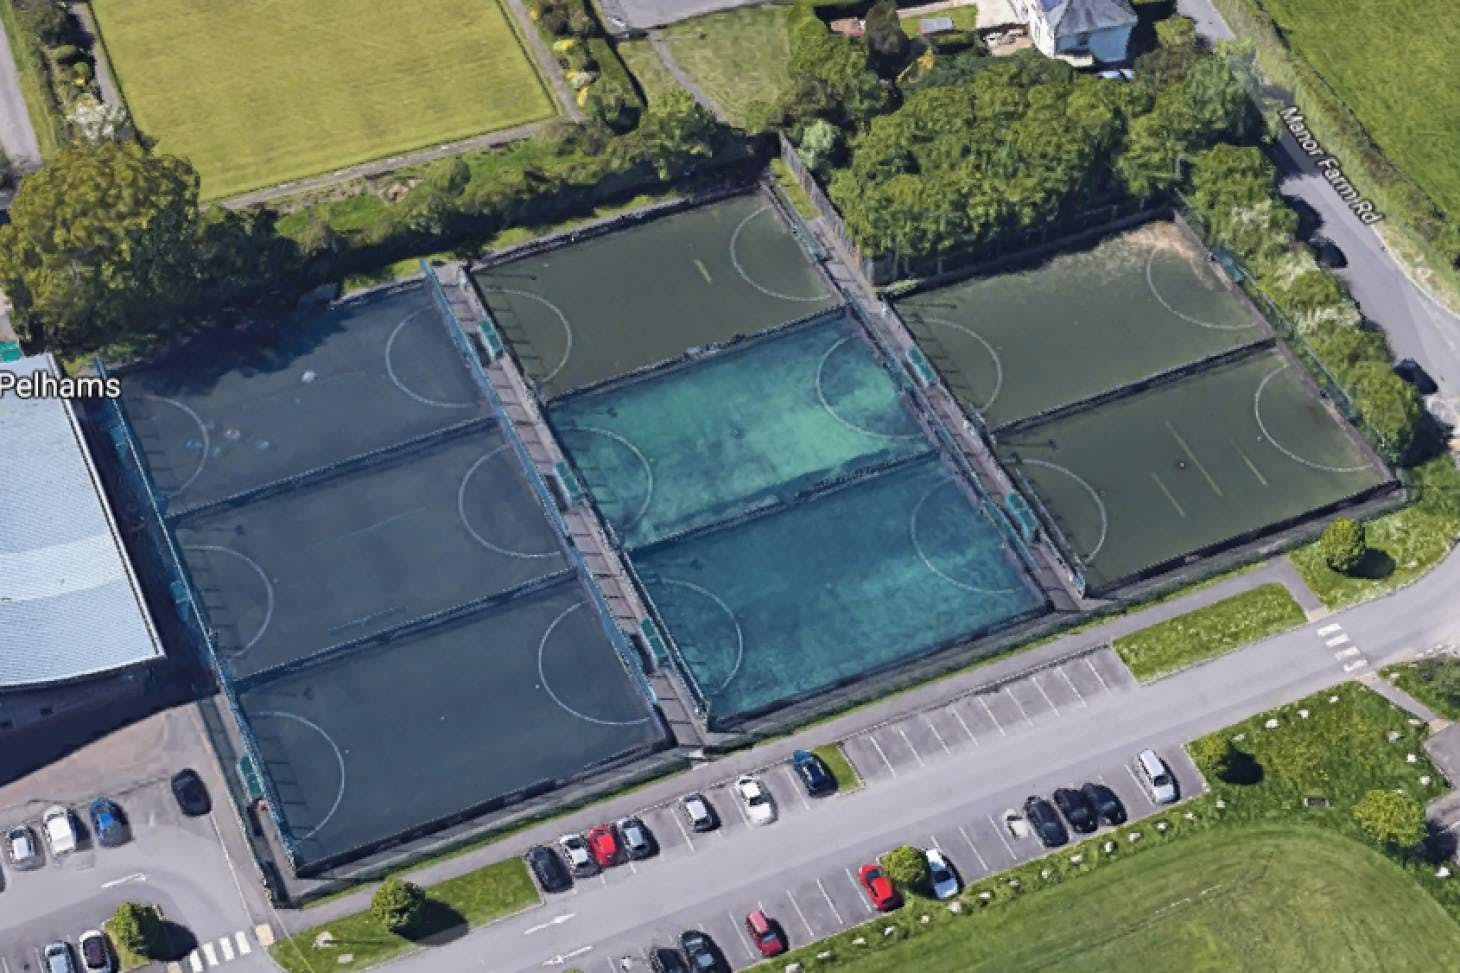 PlayFootball Bournemouth Pelhams 5 a side | 3G Astroturf football pitch